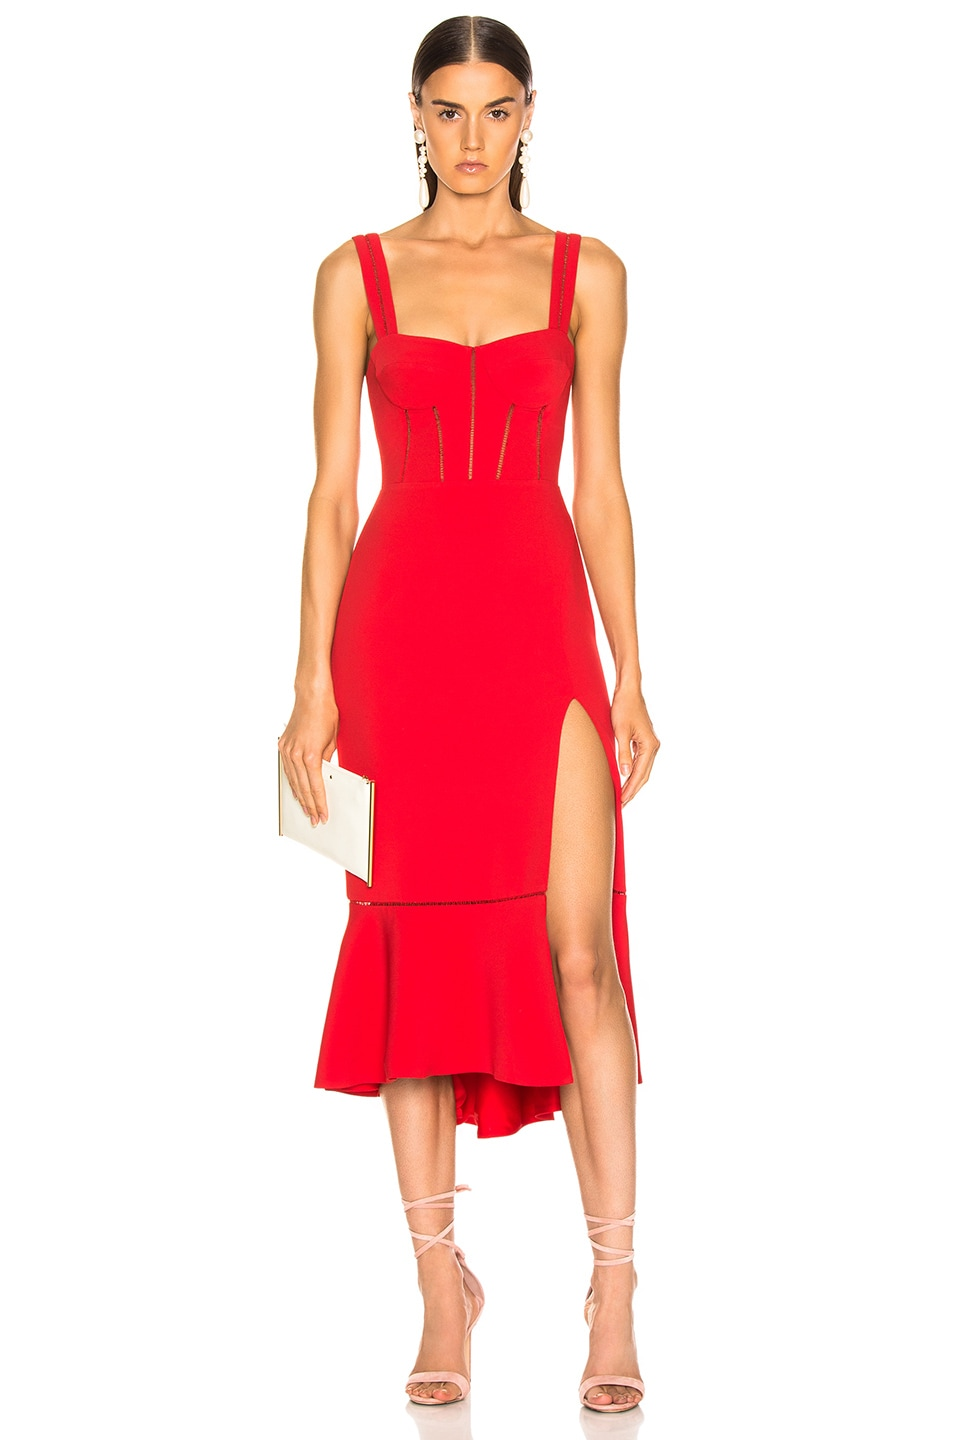 Image 1 of JONATHAN SIMKHAI for FWRD Bustier Dress in Fire Red